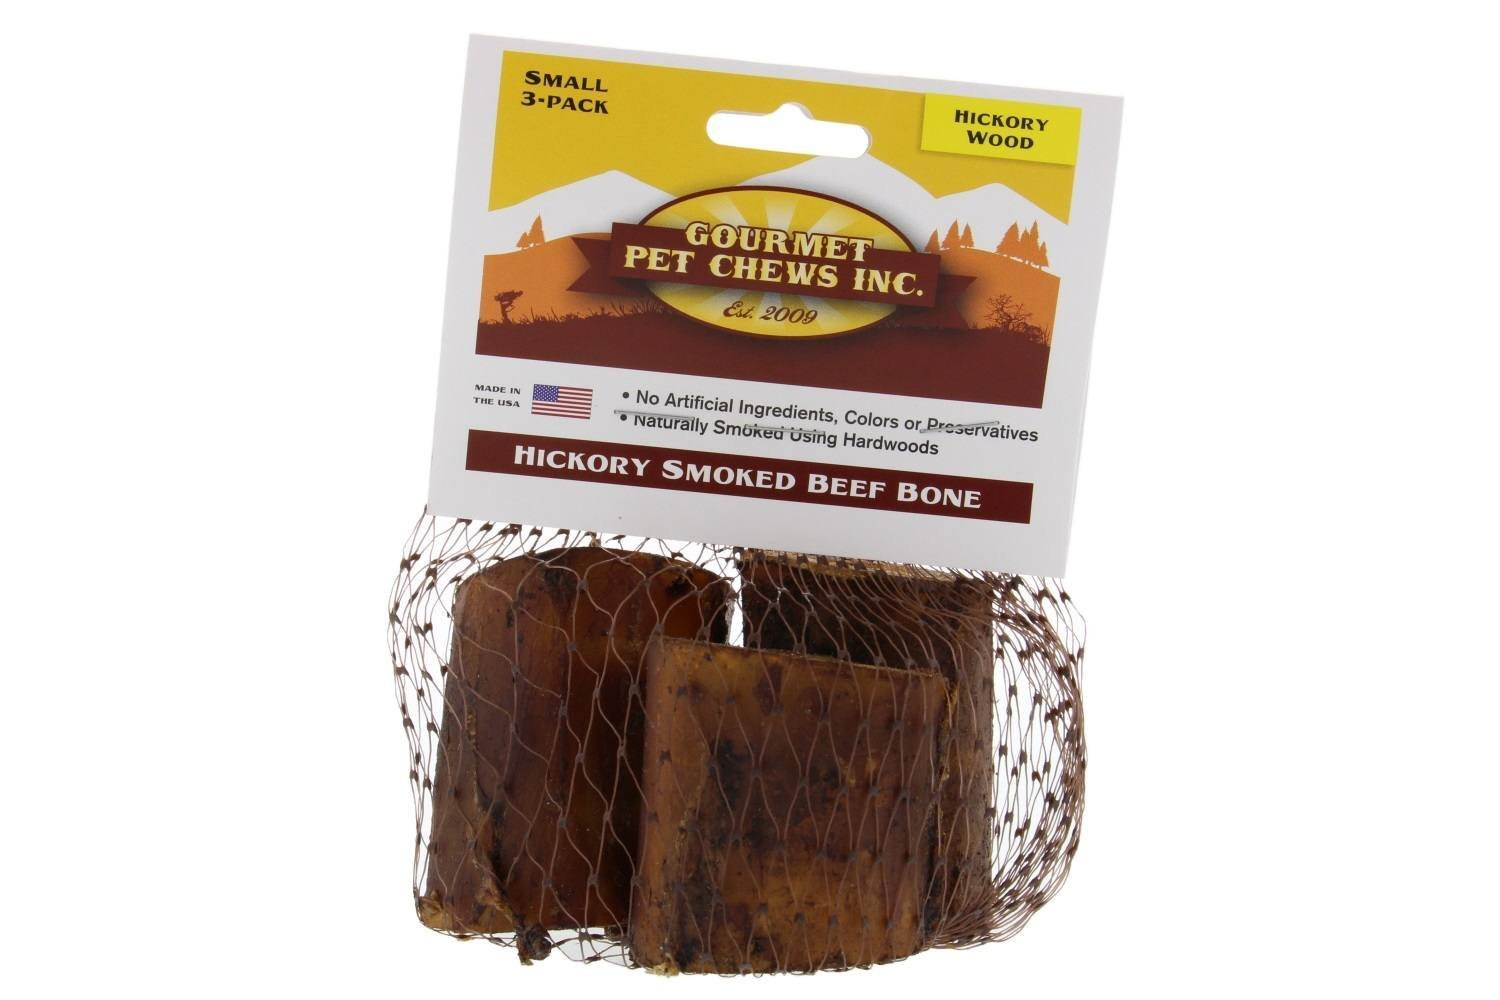 Venison joe' S Small Hickory smoked Beef Bone, 3 count